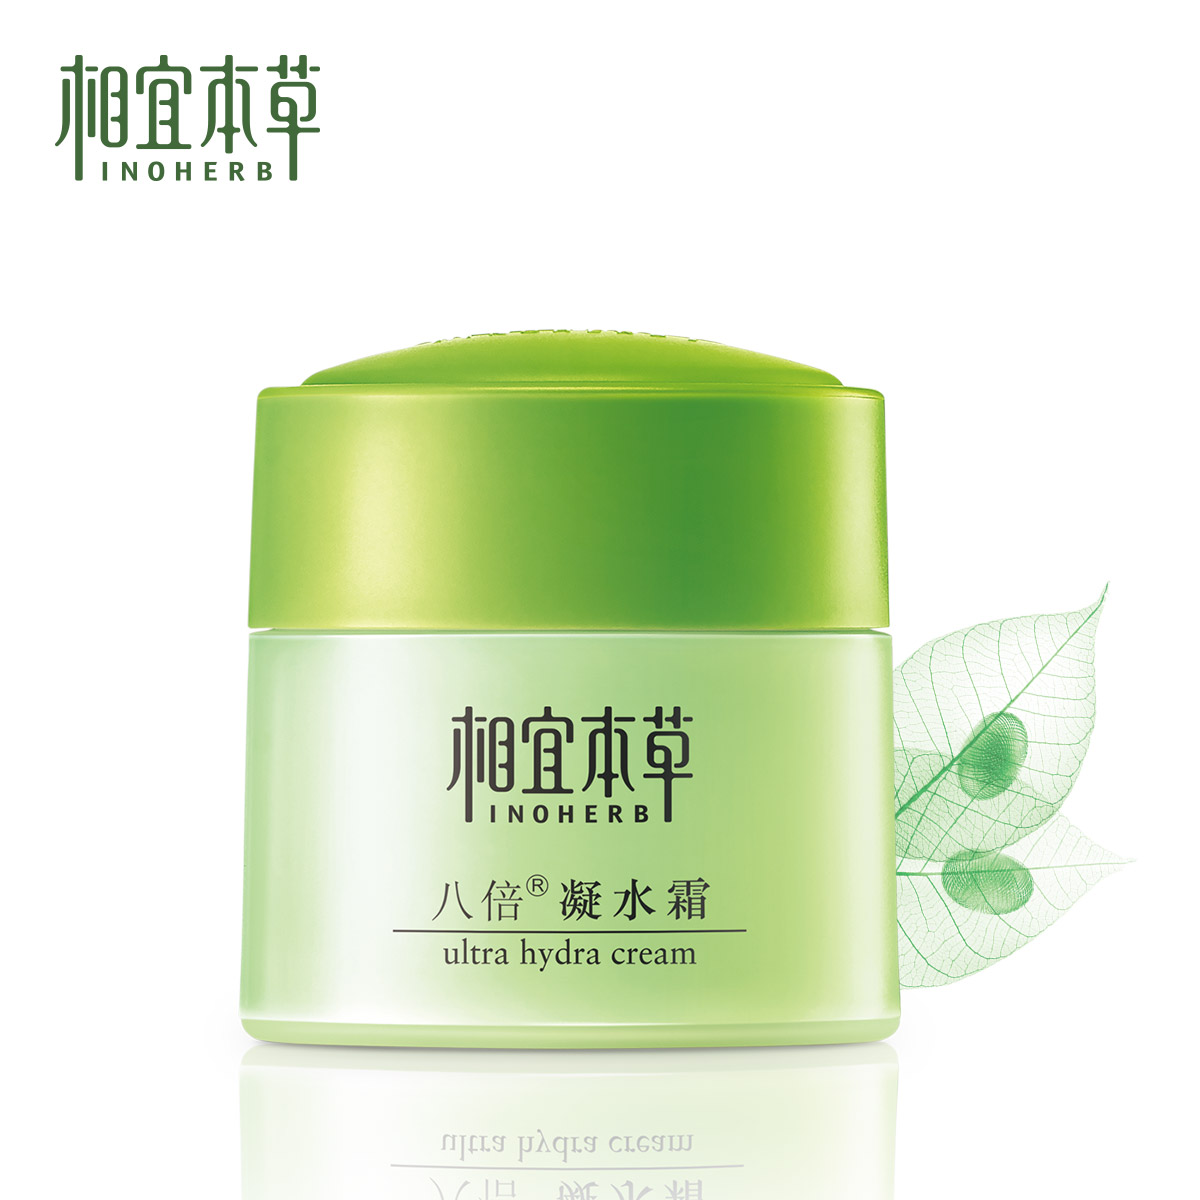 Appropriate Materia Medica Condensate Cream Hydrating Moisturizing Moisturizer Facial Oil Skin Care Lotion Domestic